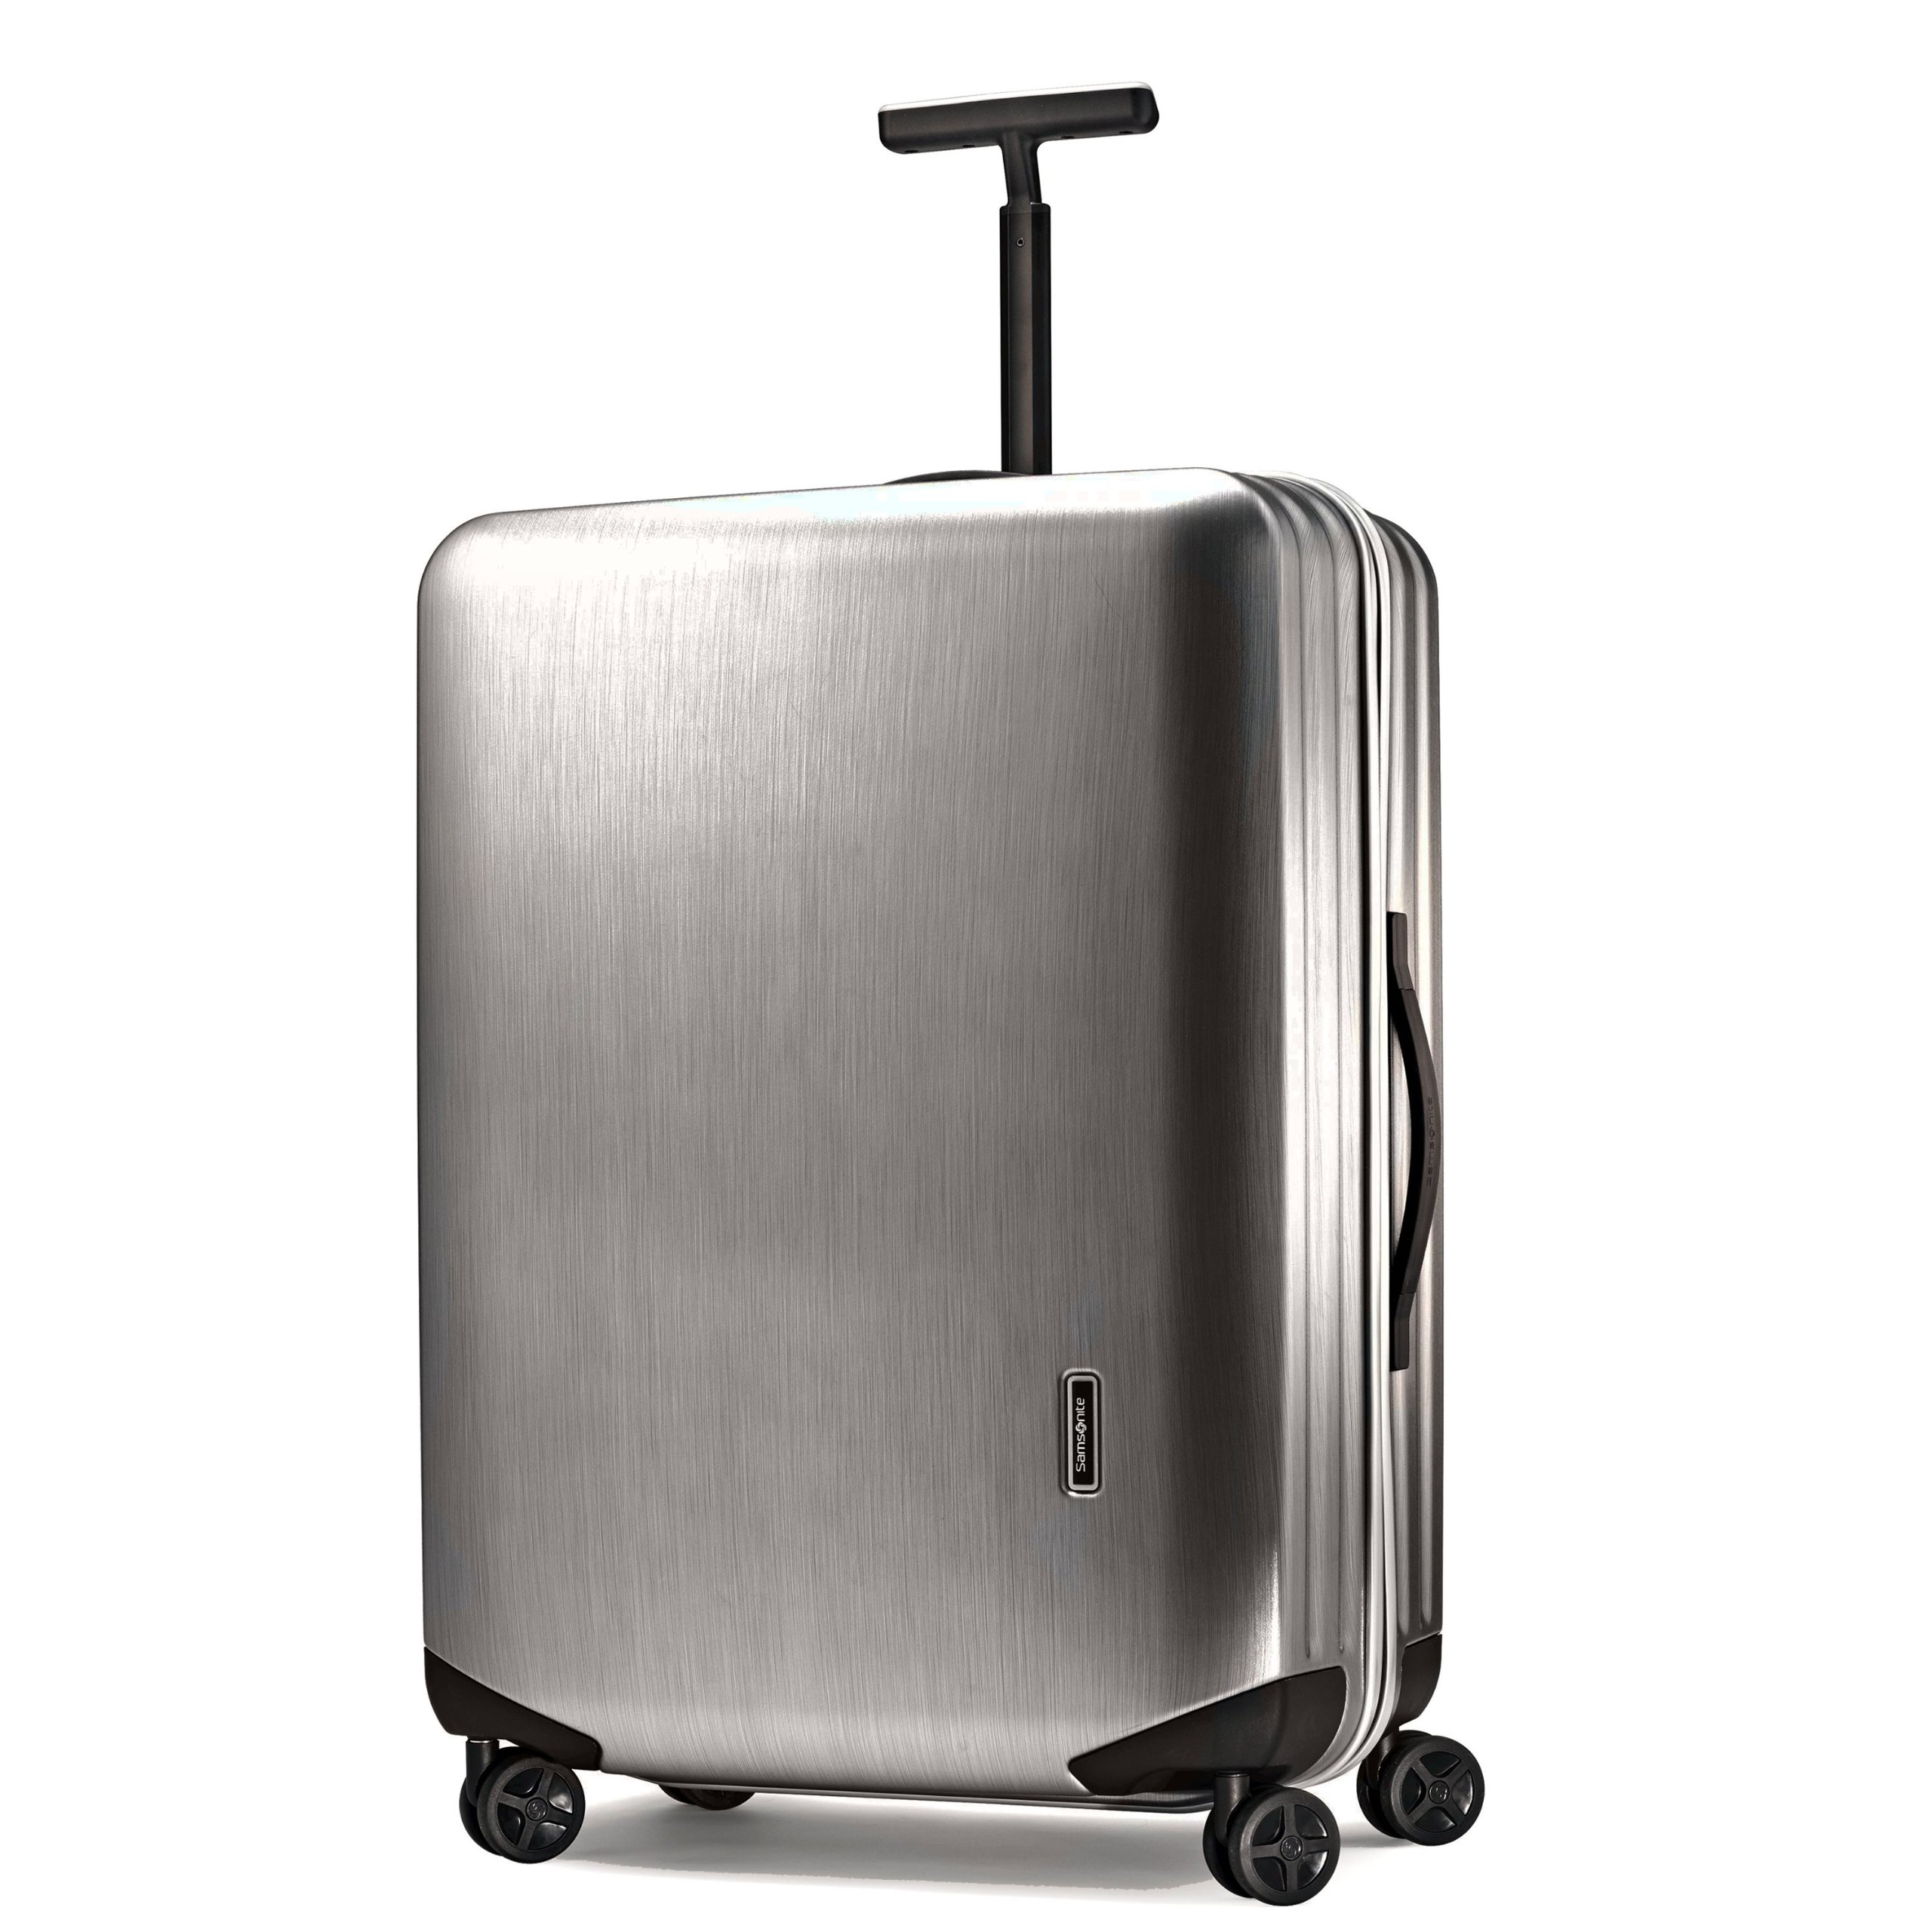 Samsonite Luggage Inova Spinner 28, Metallic Silver, One Size